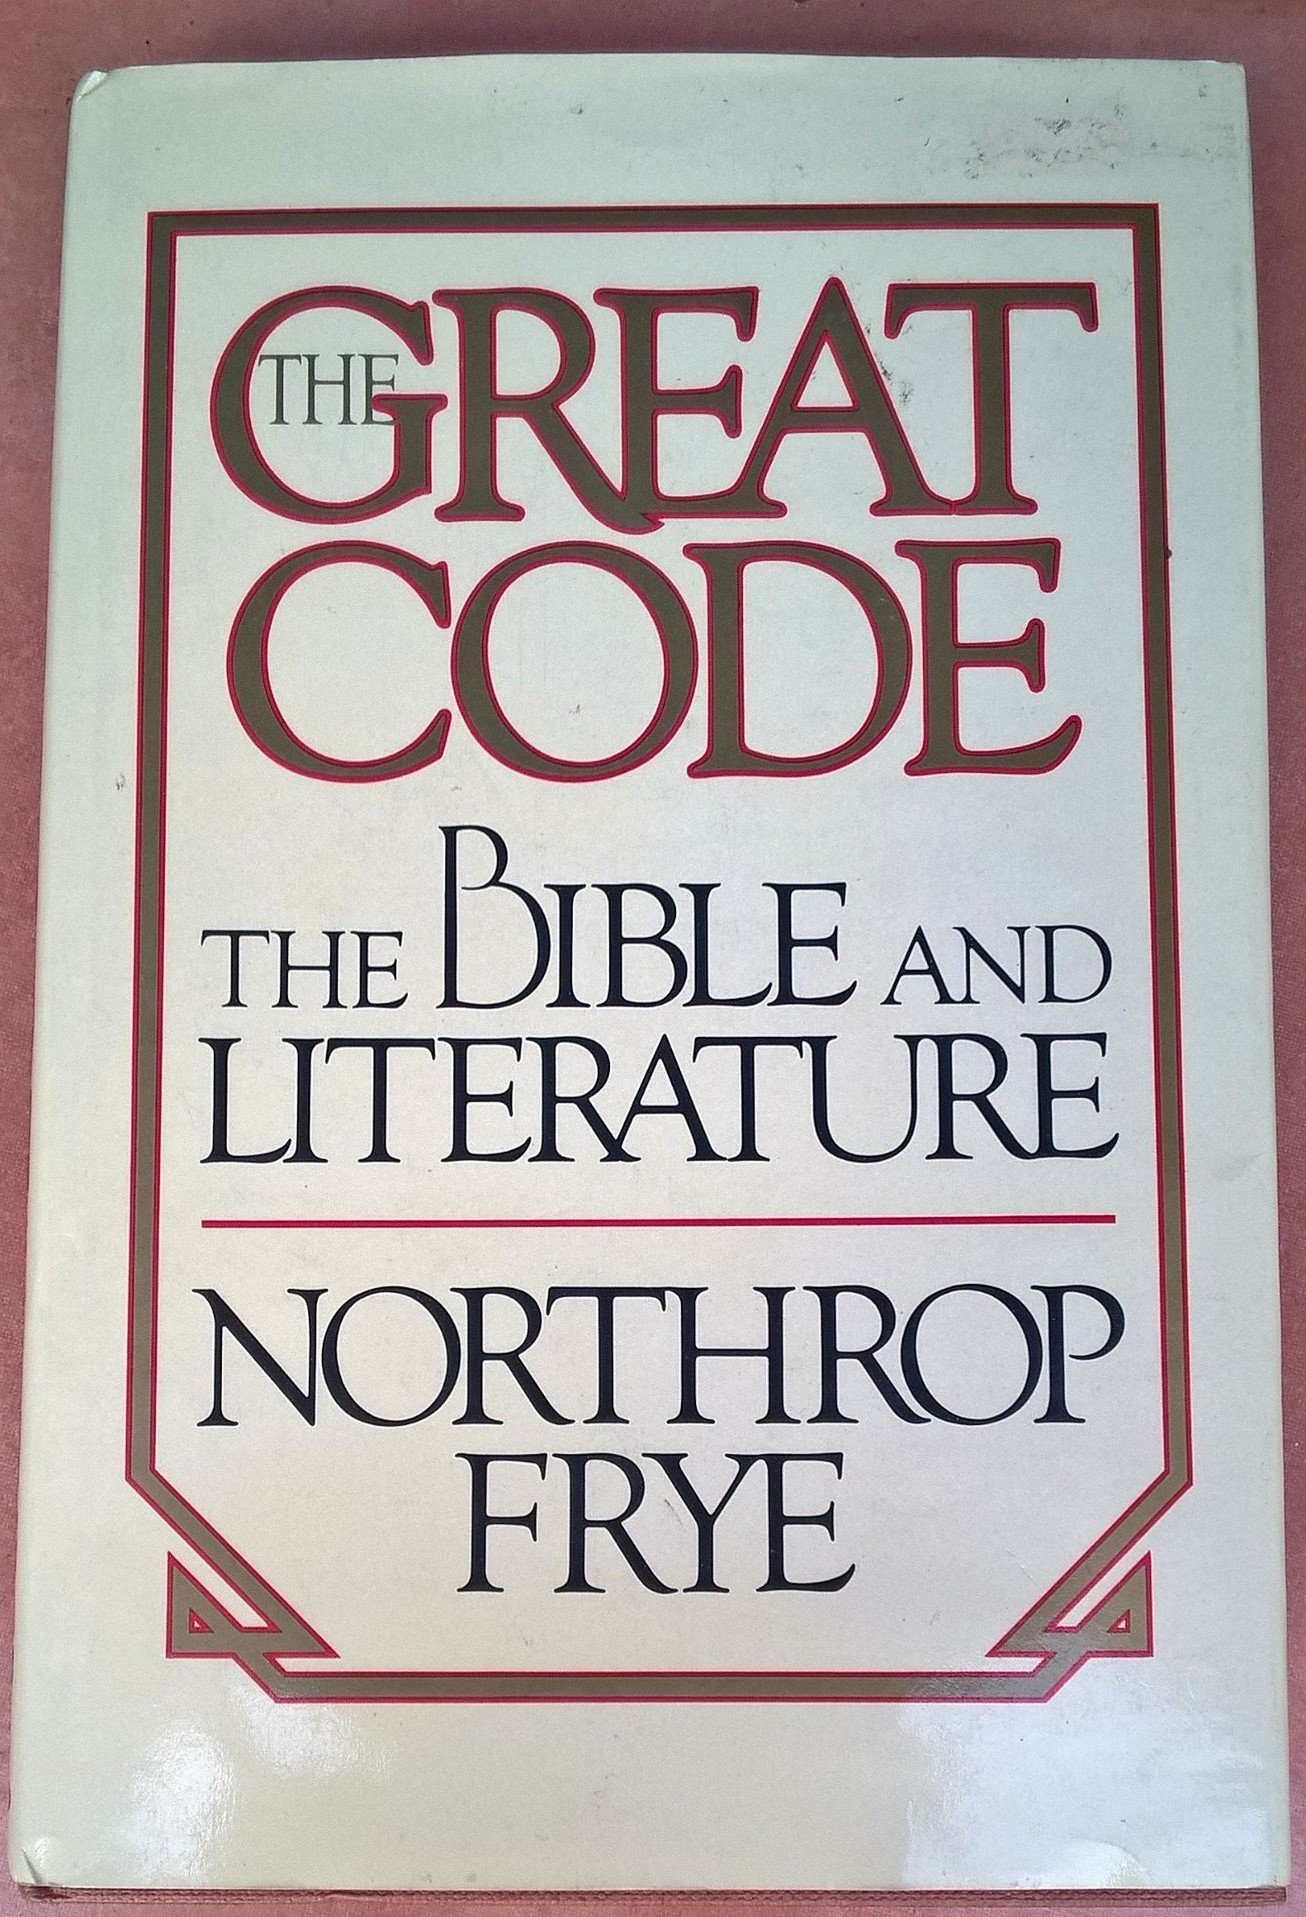 Amazon.in: Buy Great Code: Bible and Literature Book Online at Low ...